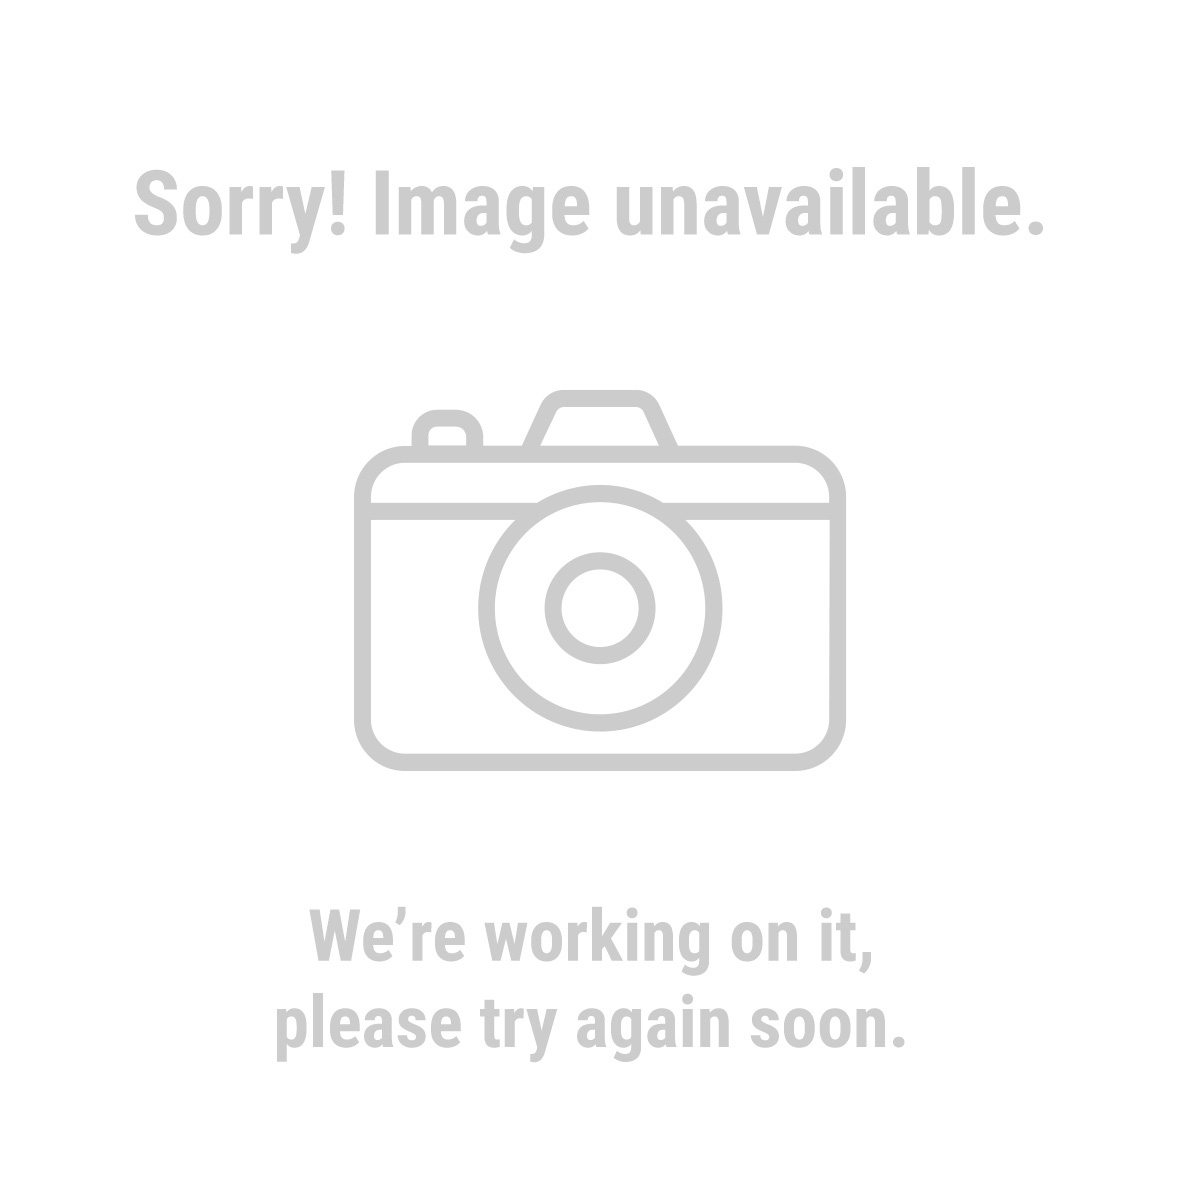 Daytona 63183 3 Ton Daytona Professional Steel Jack - Super Duty